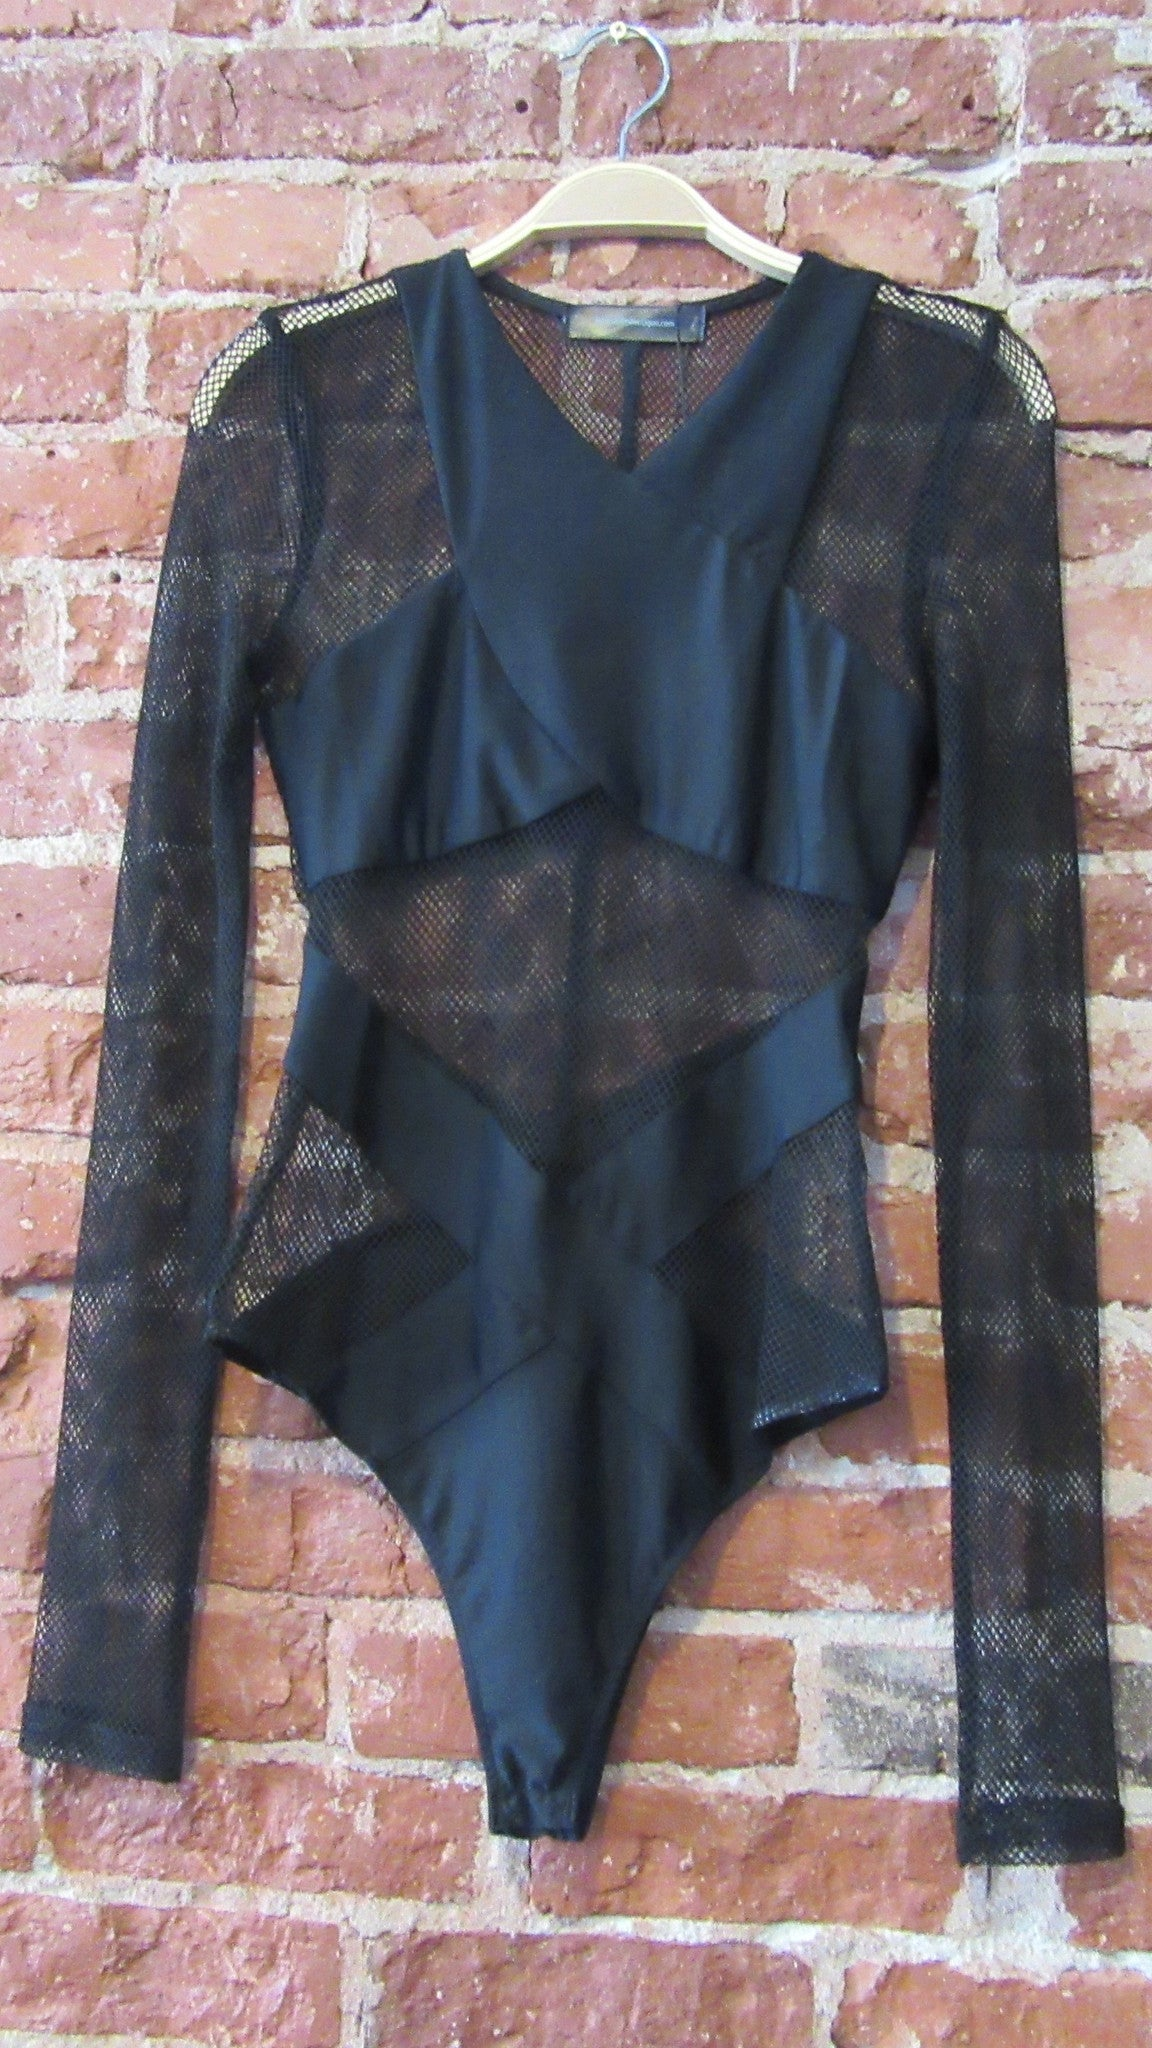 Backstage bodysuit